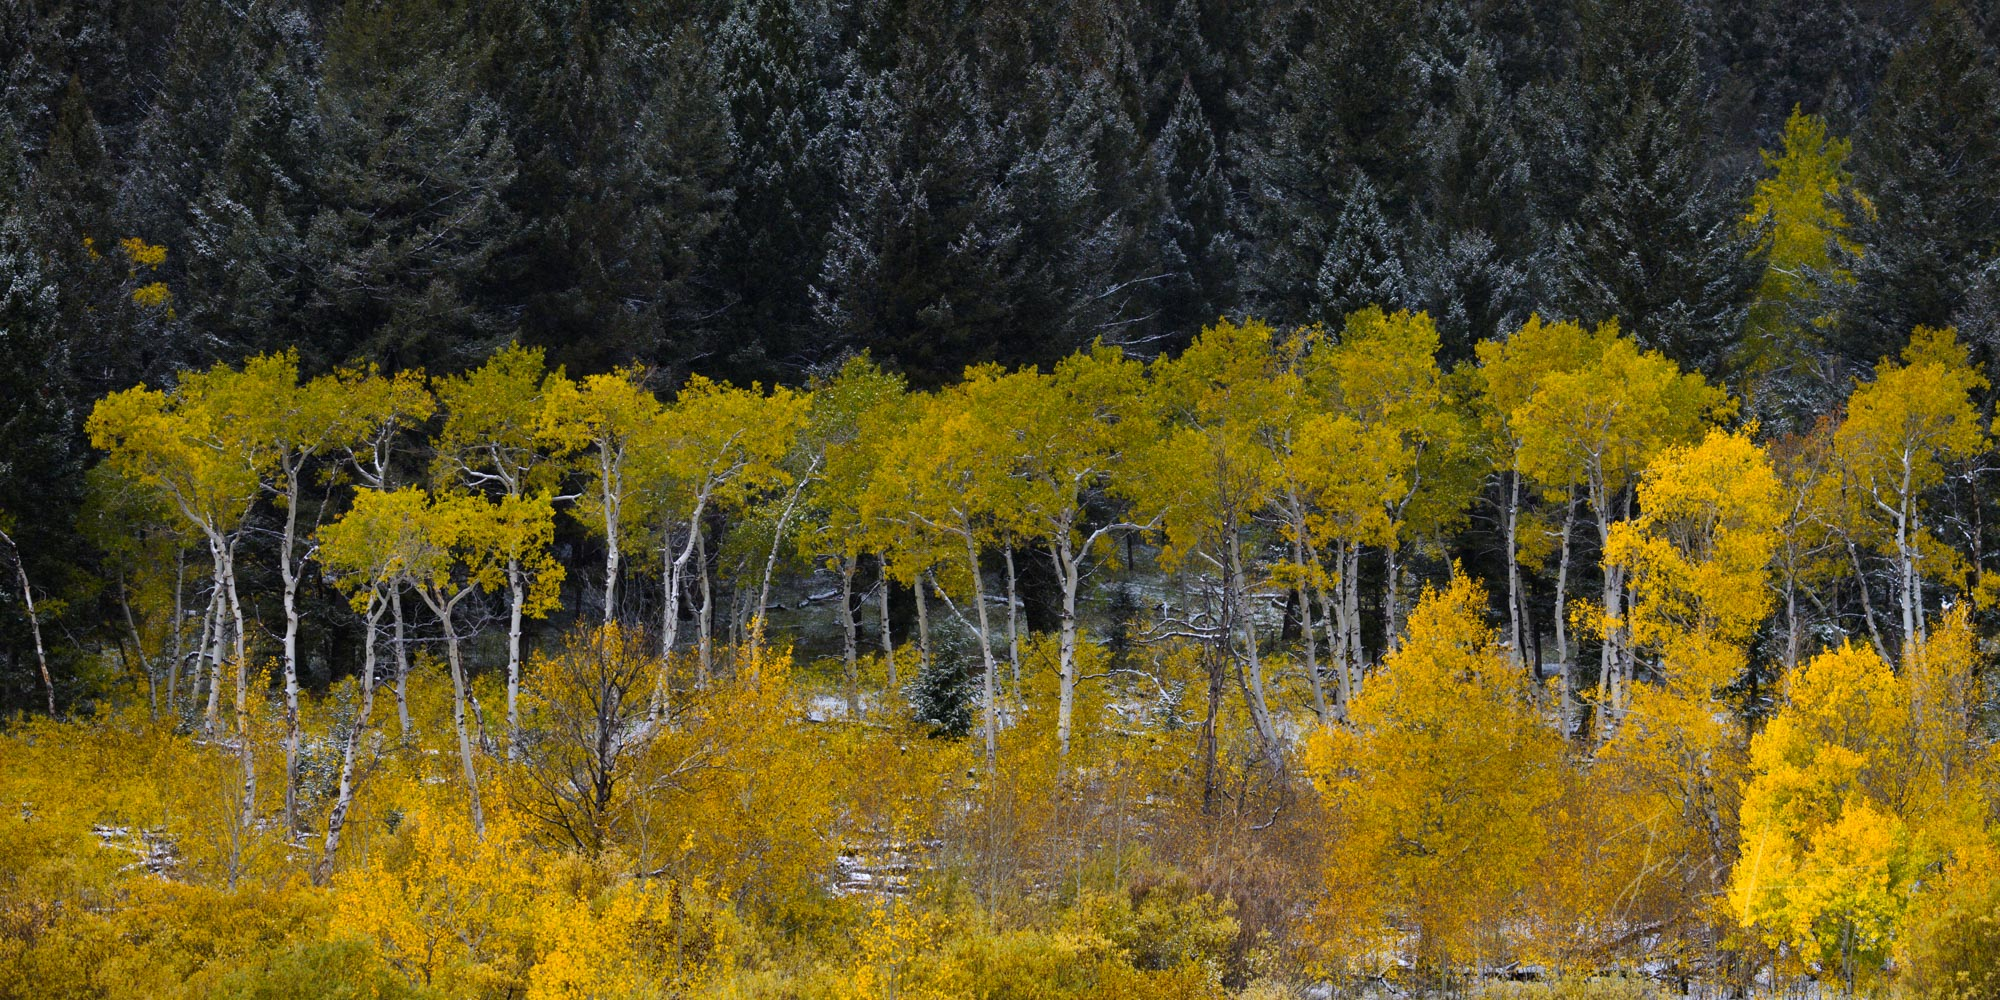 200 Fine Art Limited Edition prints of this photo depicting the layers of a autumn forest after an early season snow.